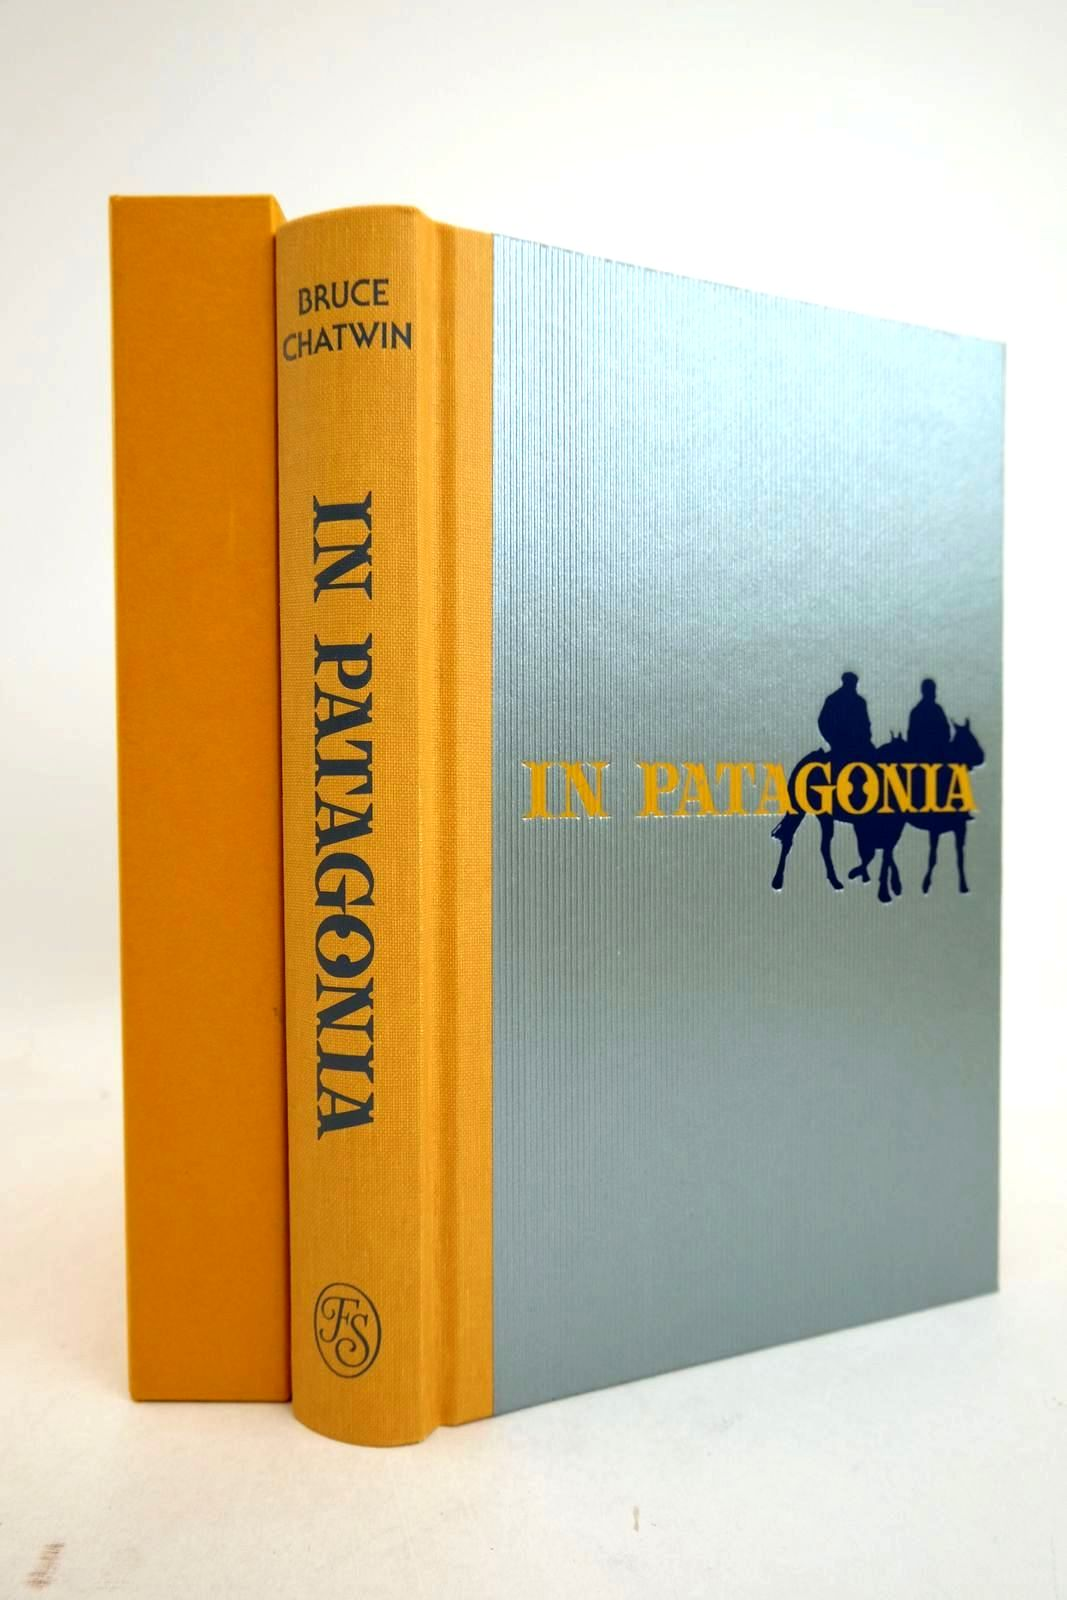 Photo of IN PATAGONIA written by Chatwin, Bruce Dalrymple, William published by Folio Society (STOCK CODE: 2134410)  for sale by Stella & Rose's Books